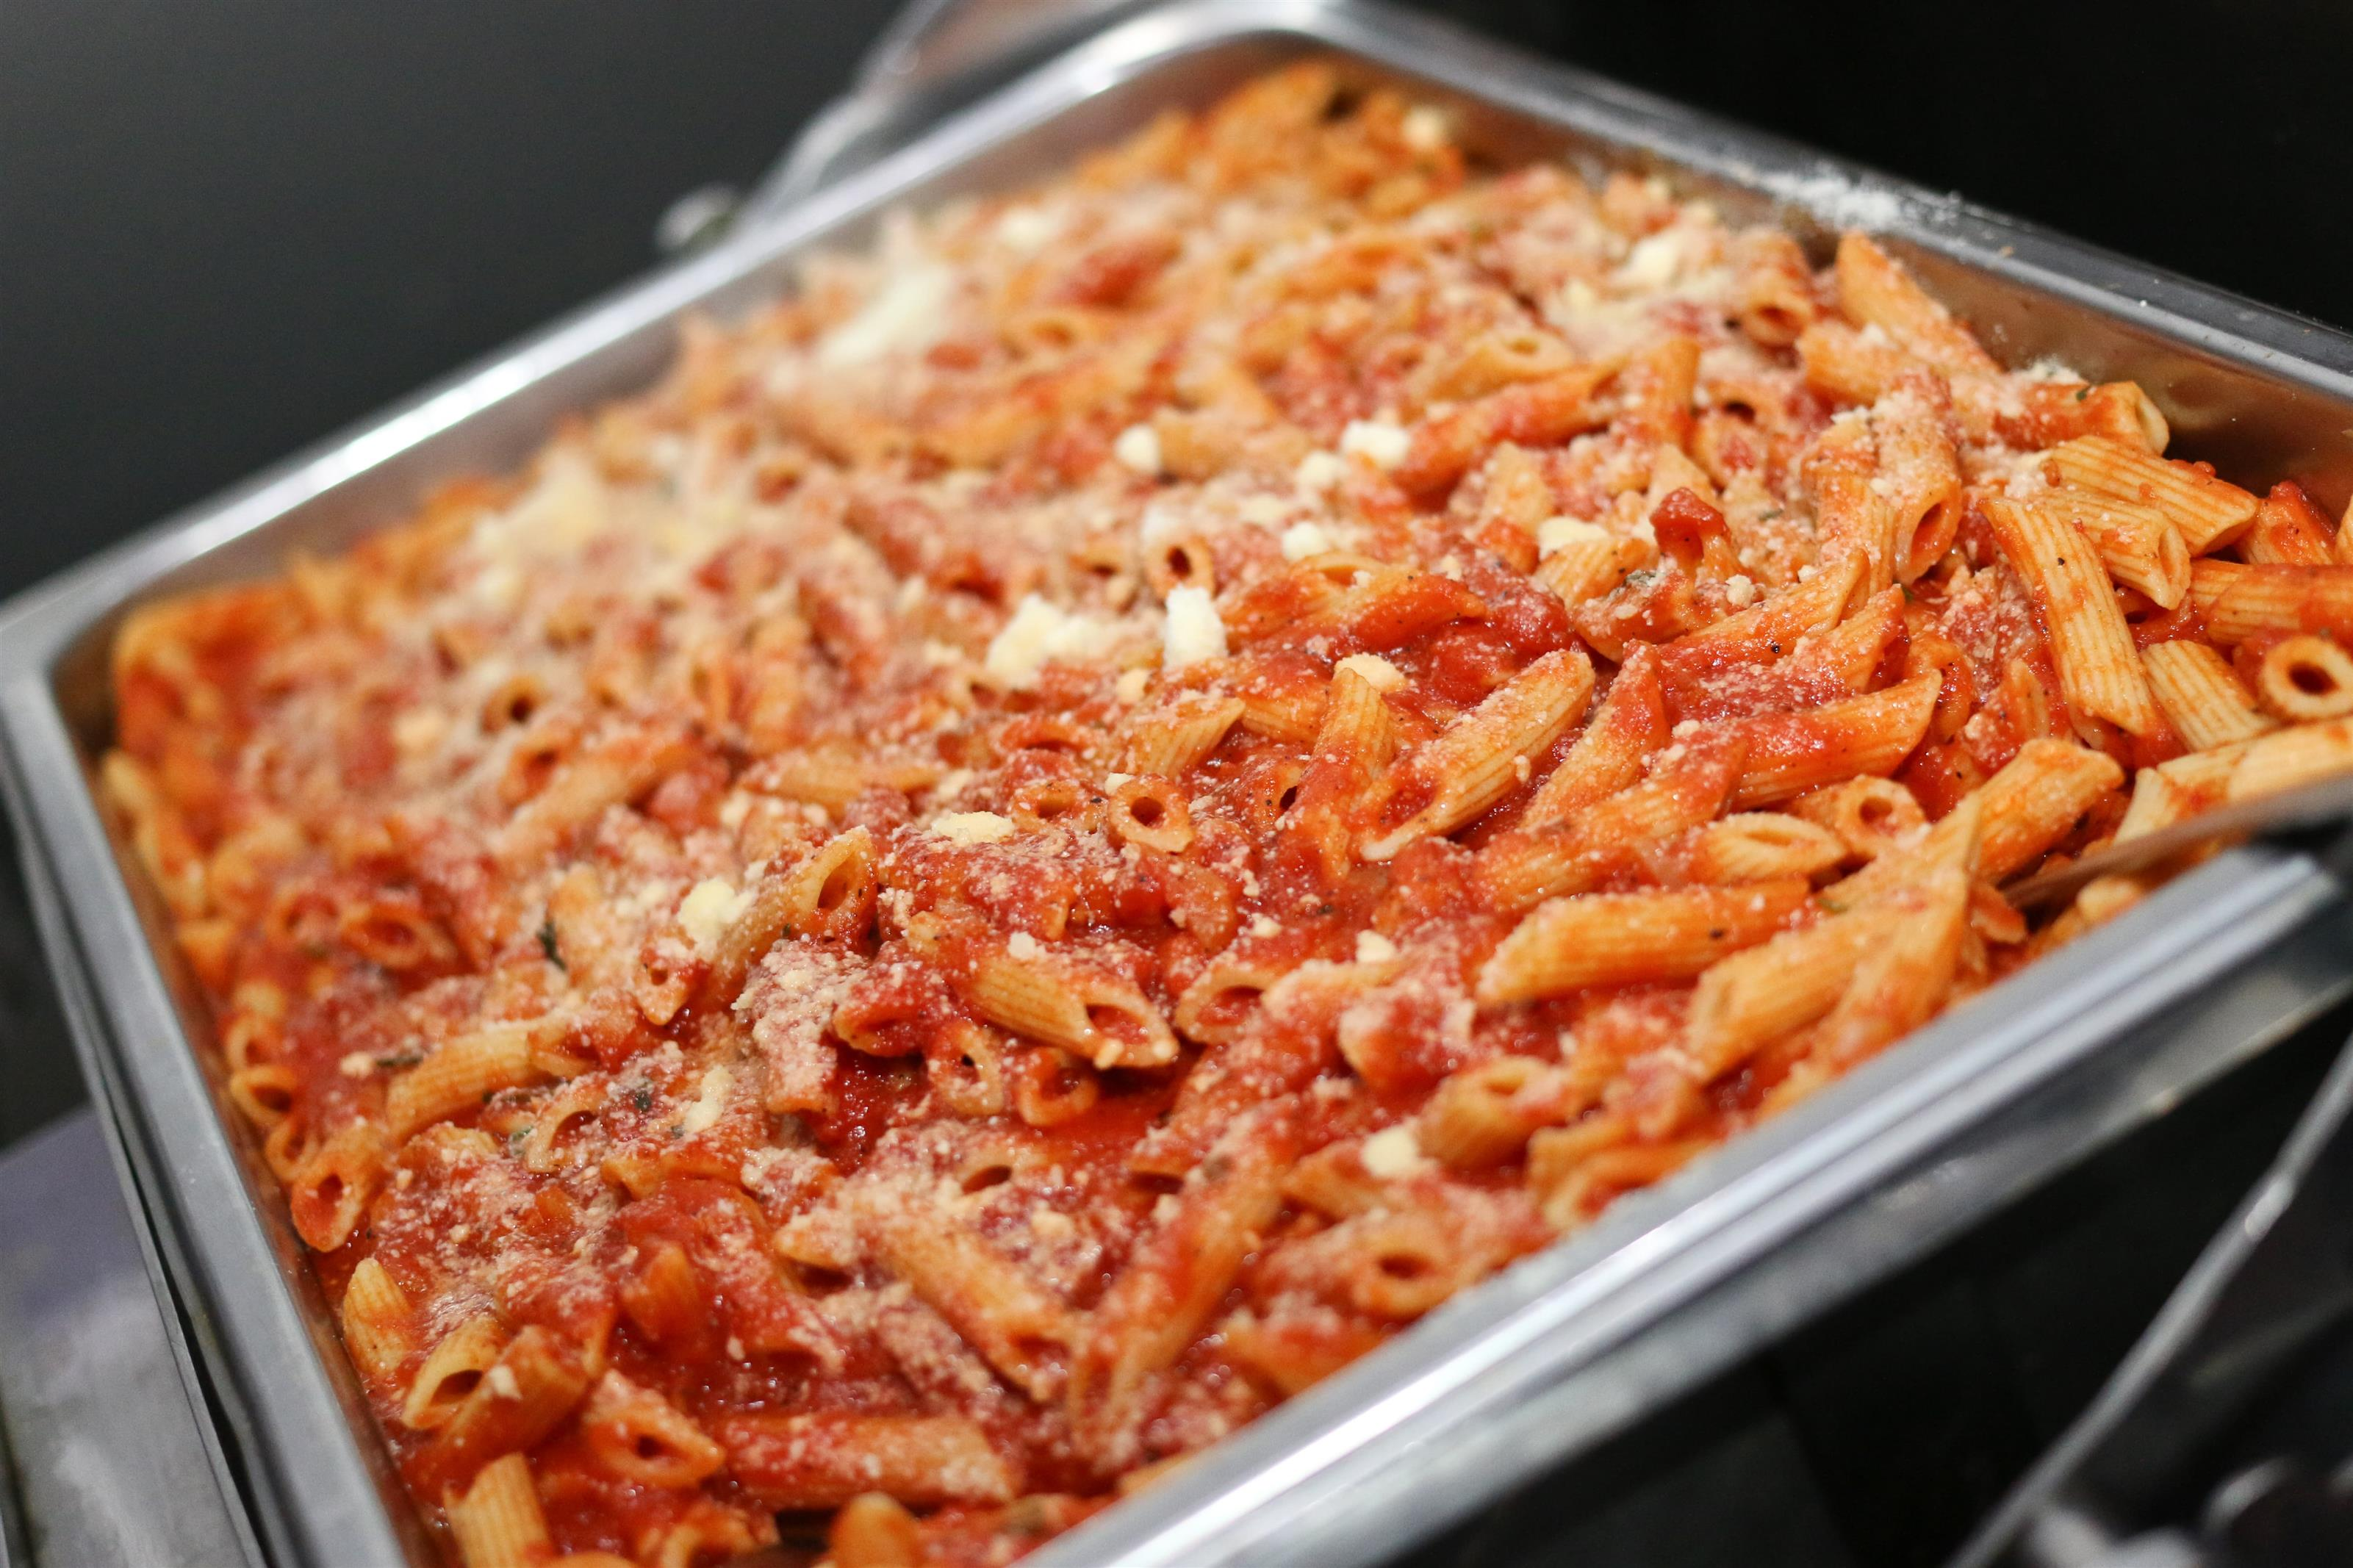 Metal tray of penne pasta and tomato sauce topped with grated cheese